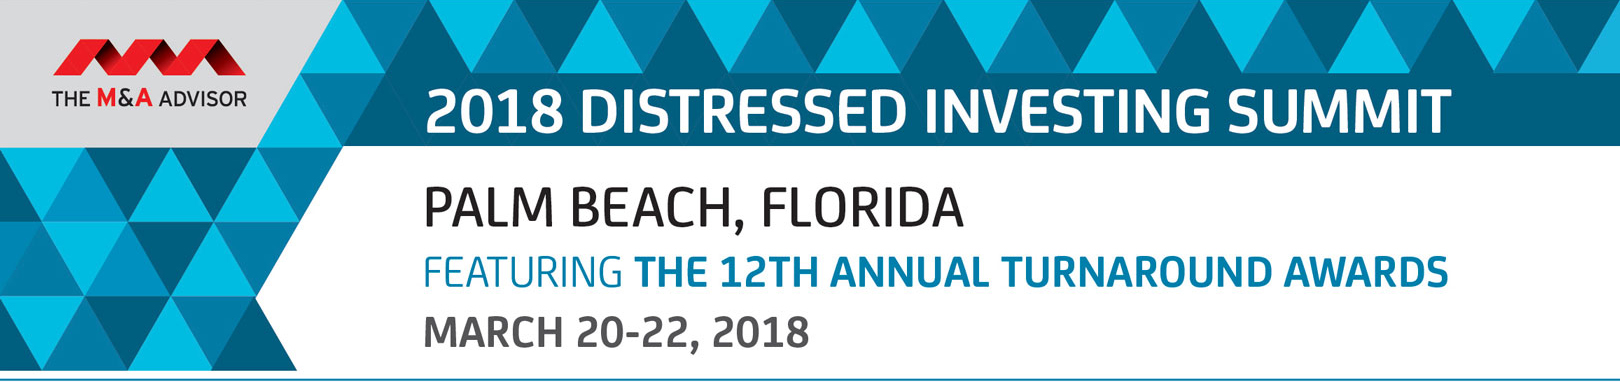 2018 Distressed Investing Summit featuring 12th Annual Turnaround Awards